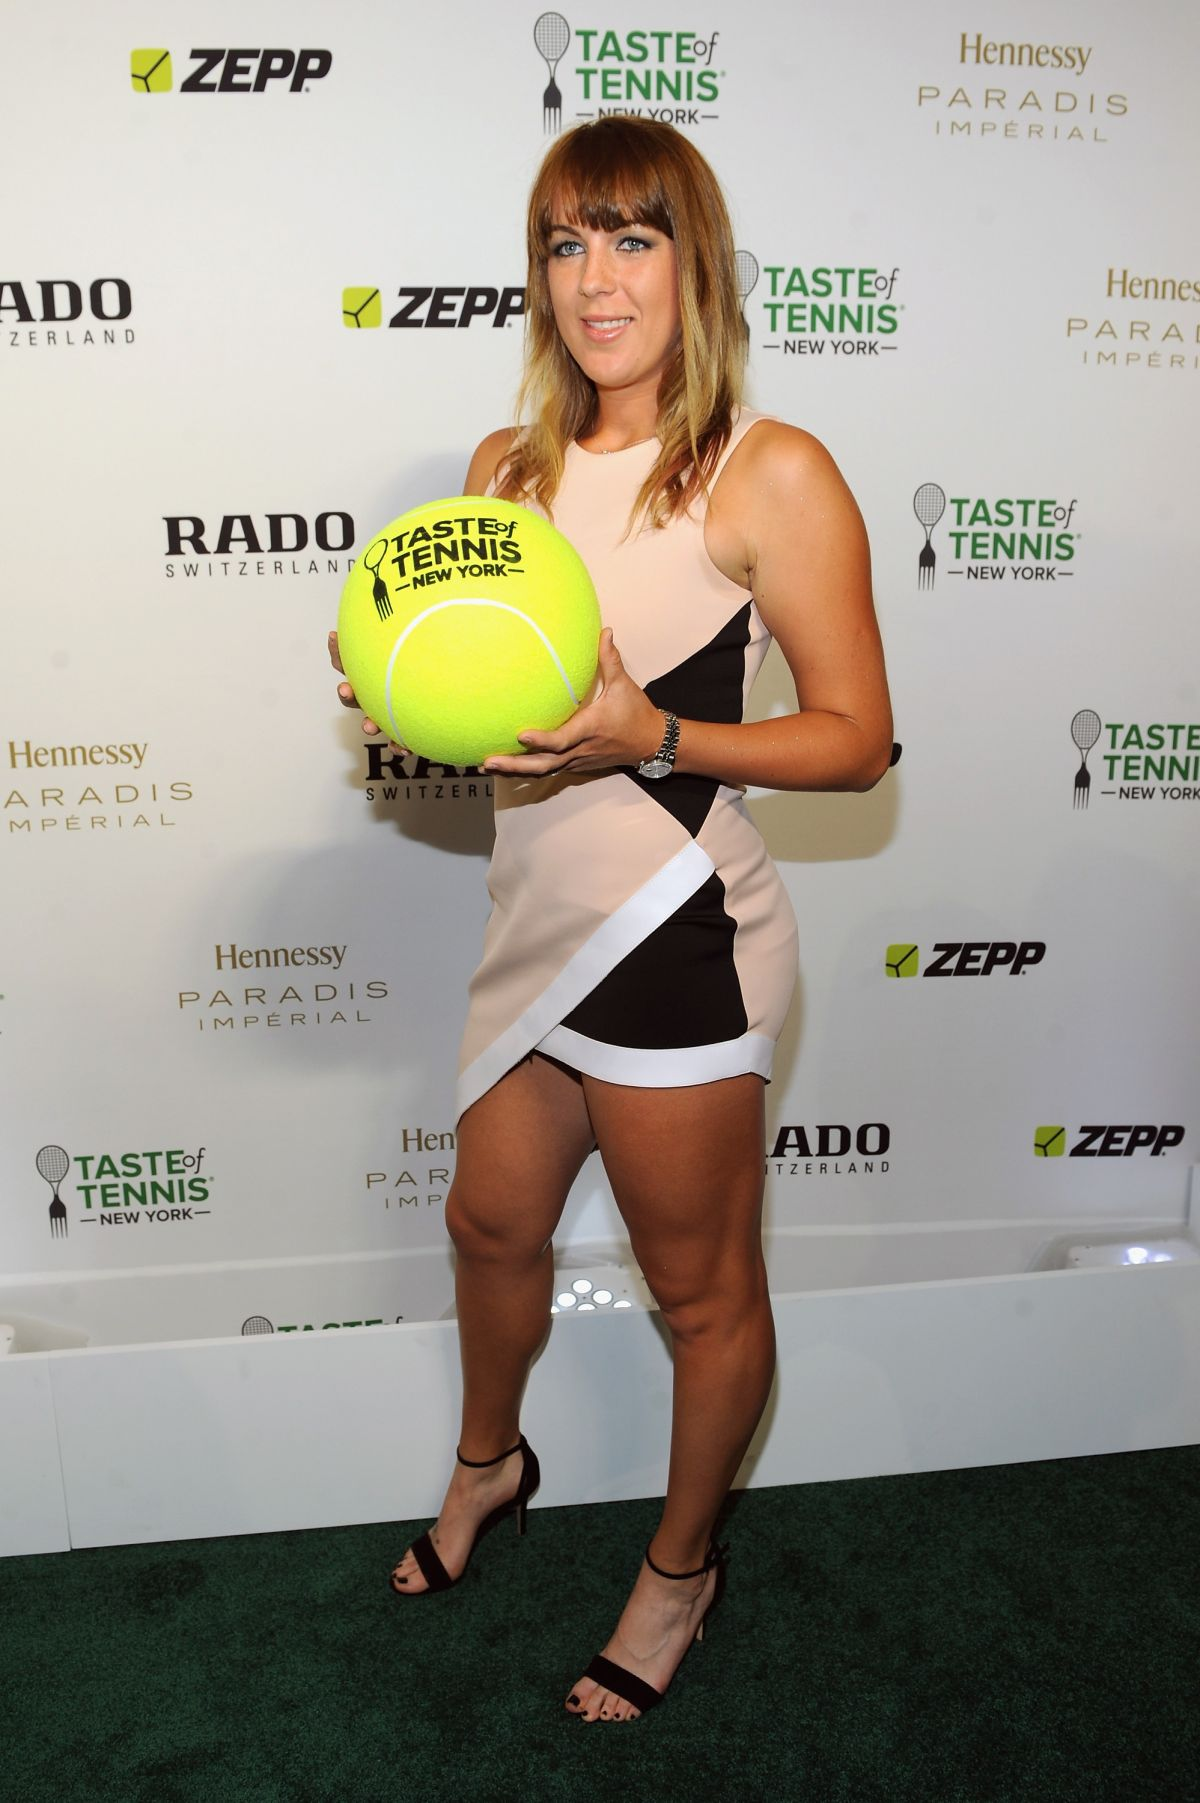 ANASTASIA PAVLYCHENKOVA at Taste of Tennis Gala in New York